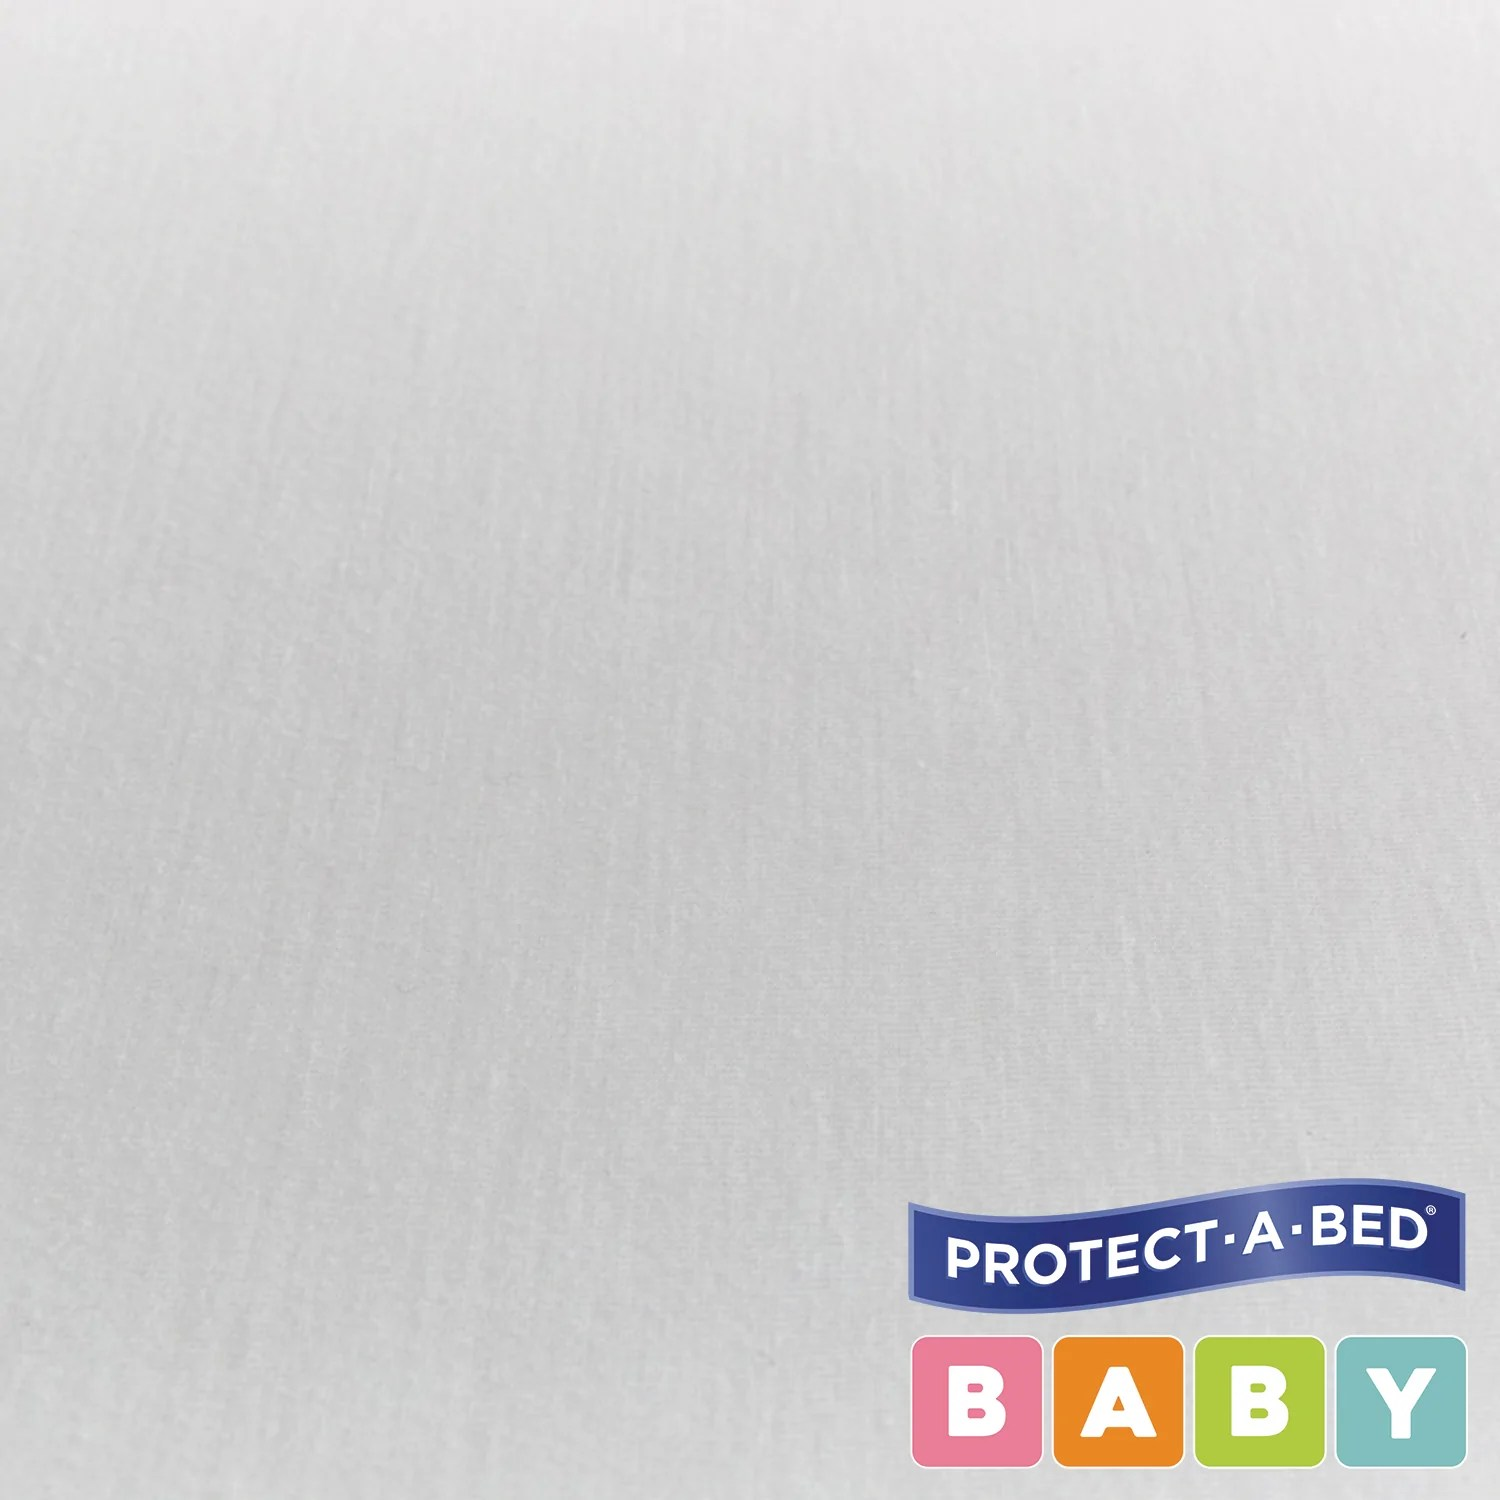 Bassinet Matress Protector Tencel Fitted Bassinet Mattress Protectors Protect A Bed